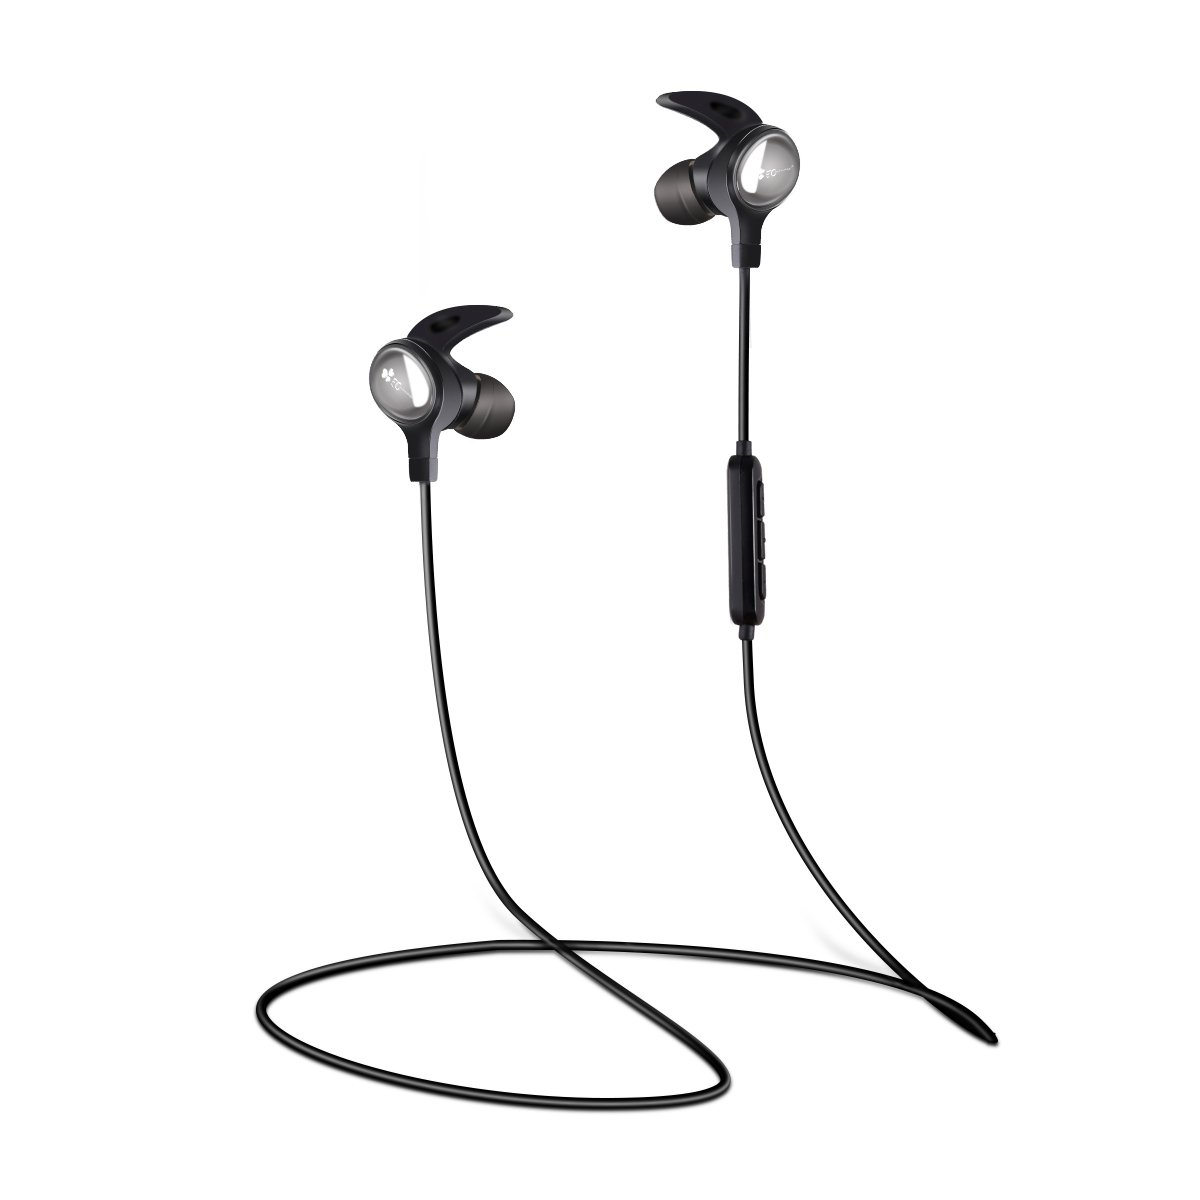 RLY Wireless In Ear Earbud Headphones Sport Earphone